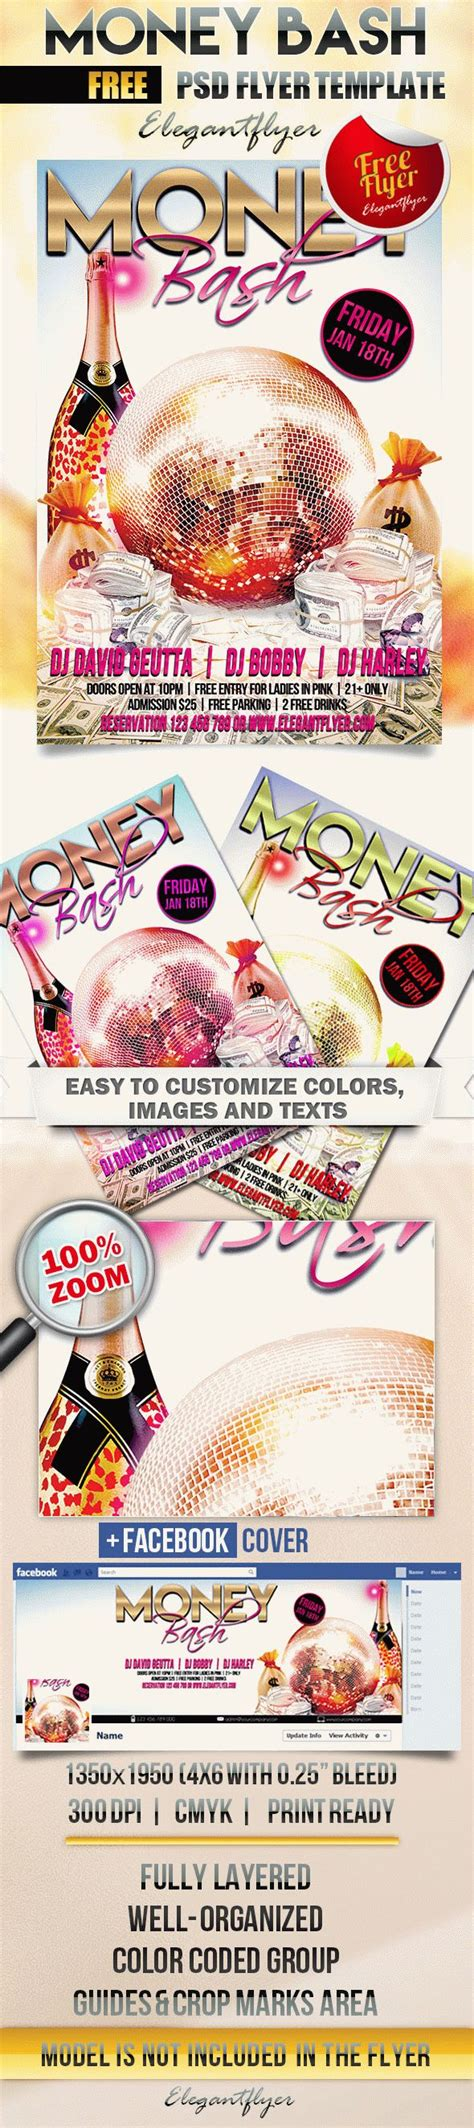 Free Flyer Template Psd Money Bash Facebook Cover Flyershitter Com Money Flyer Template